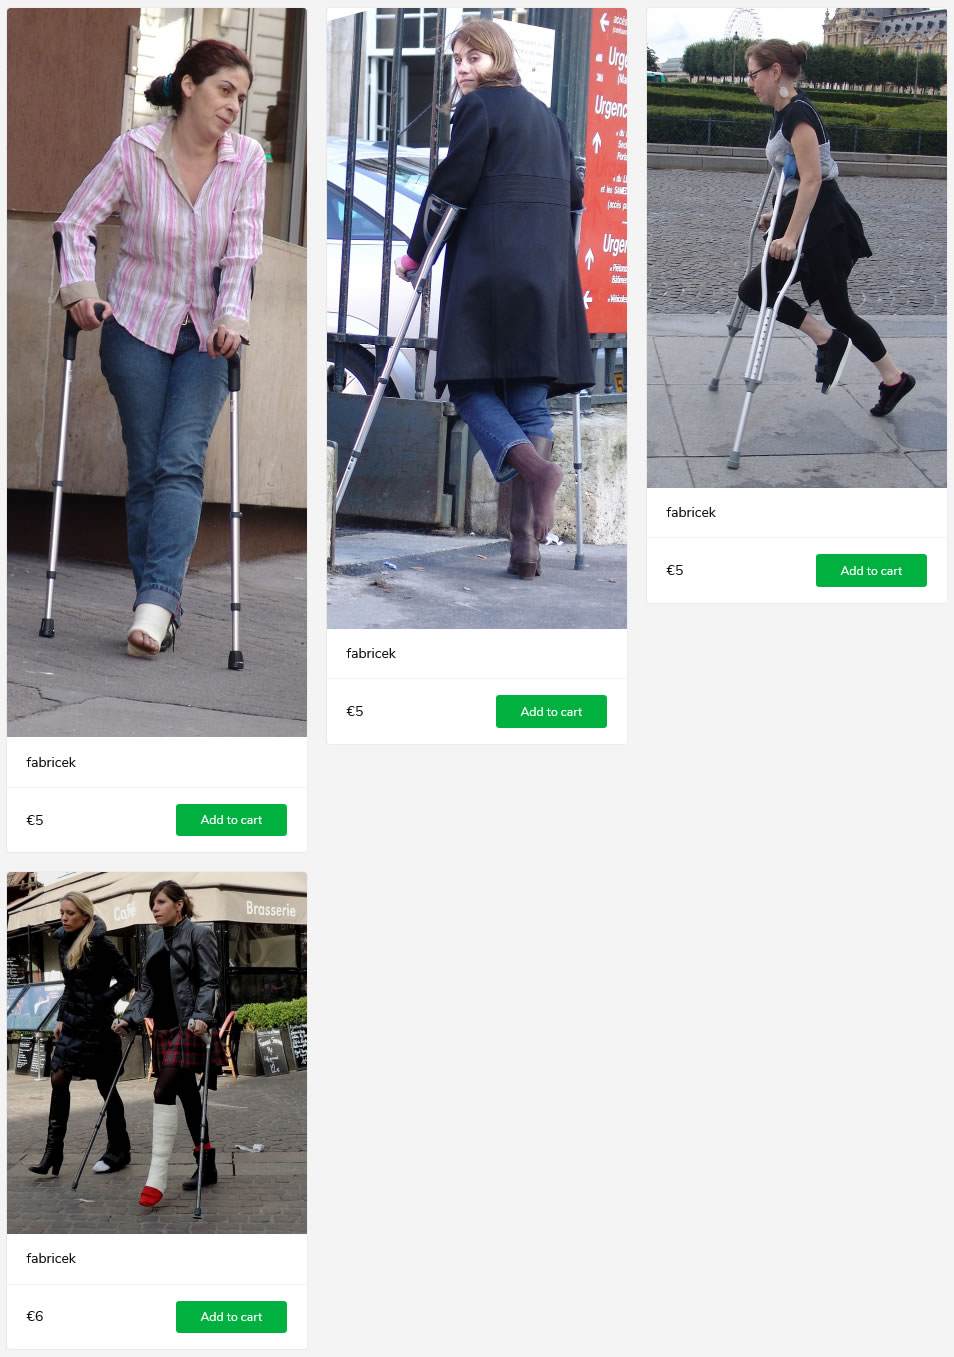 4 sets of women crutching with plastered/braced legs and barefoot